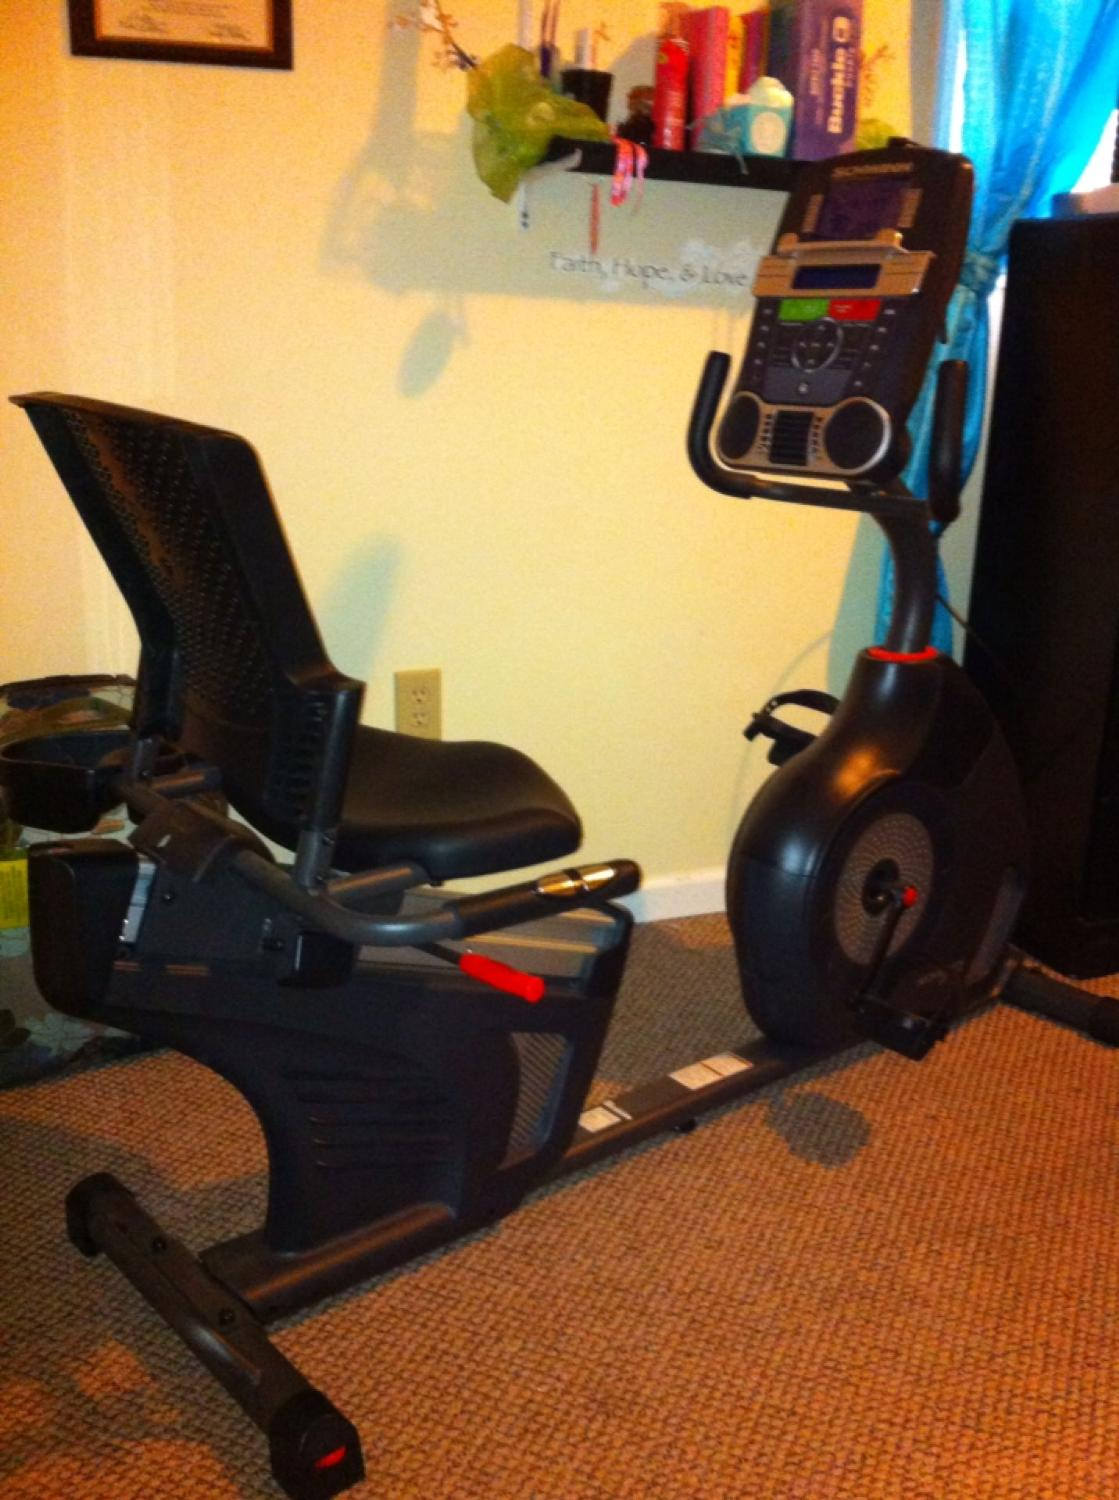 Schwinn 270 Recumbent Bike -Best Exercise Bikes for Knee Replacement Rehab